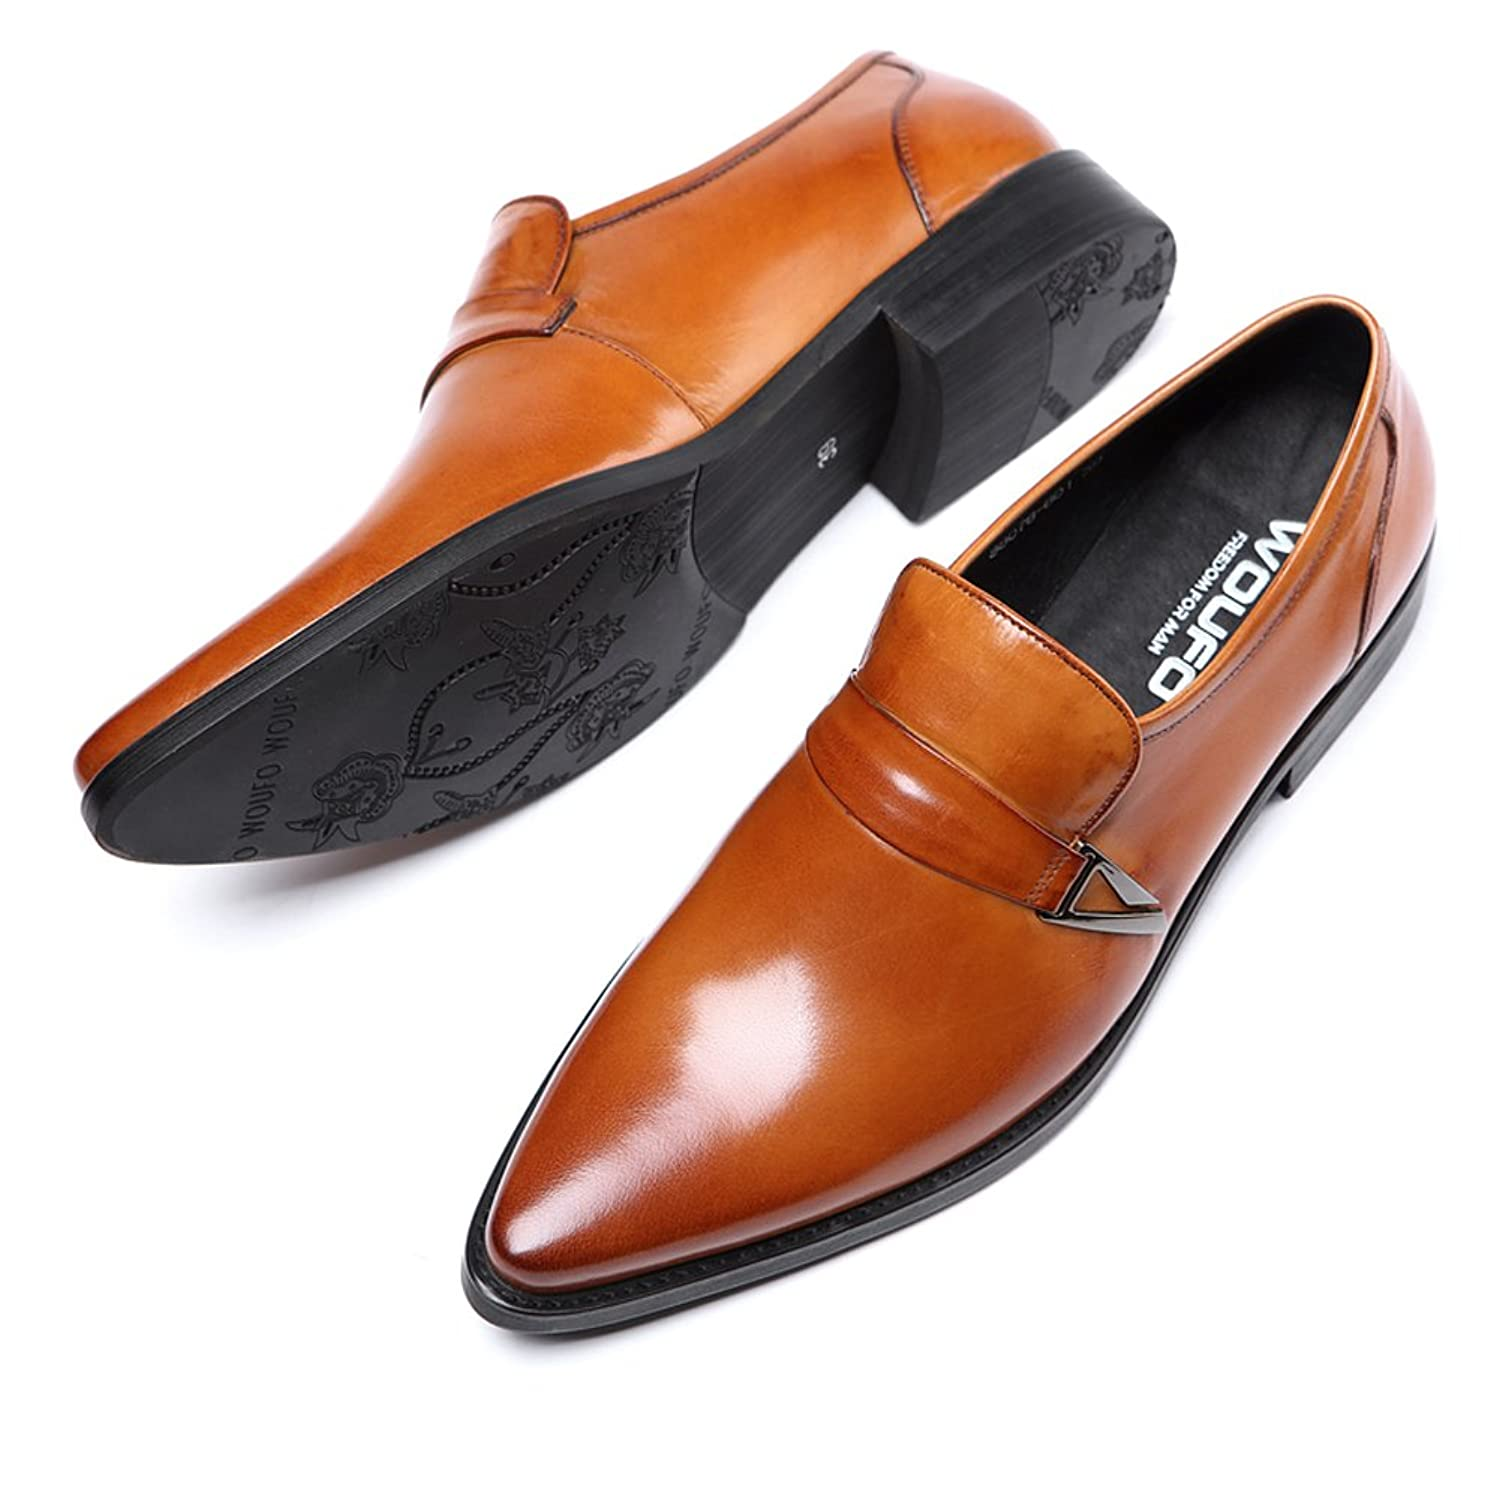 New Loafer Shoes/Innovative Penny ShoesGenuine LeatherPlain Pointed ToeRubber Sole; Fashion and Formal;Black US8.0=EU41